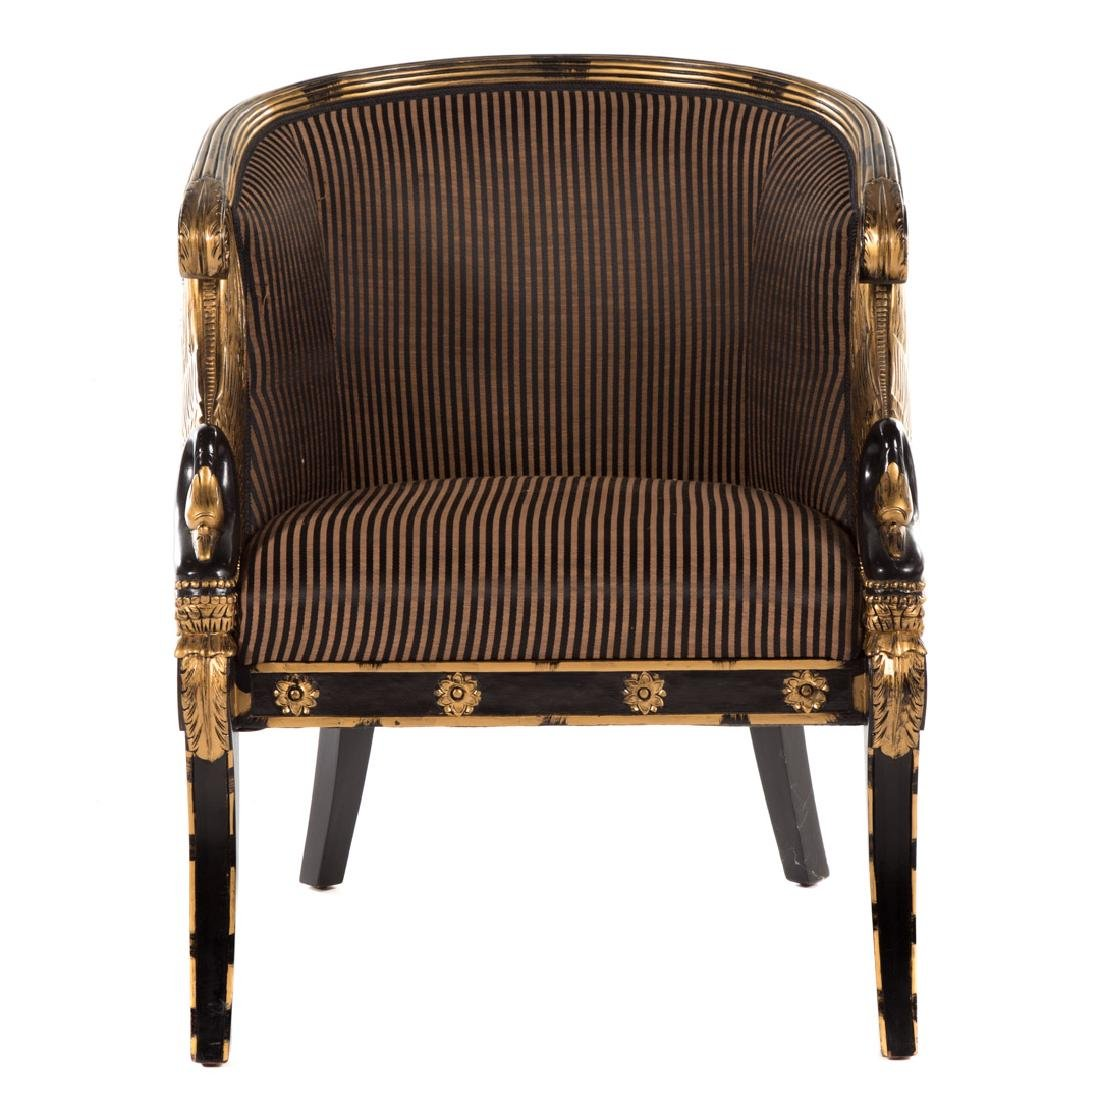 Empire style partial gilt upholstered bergere